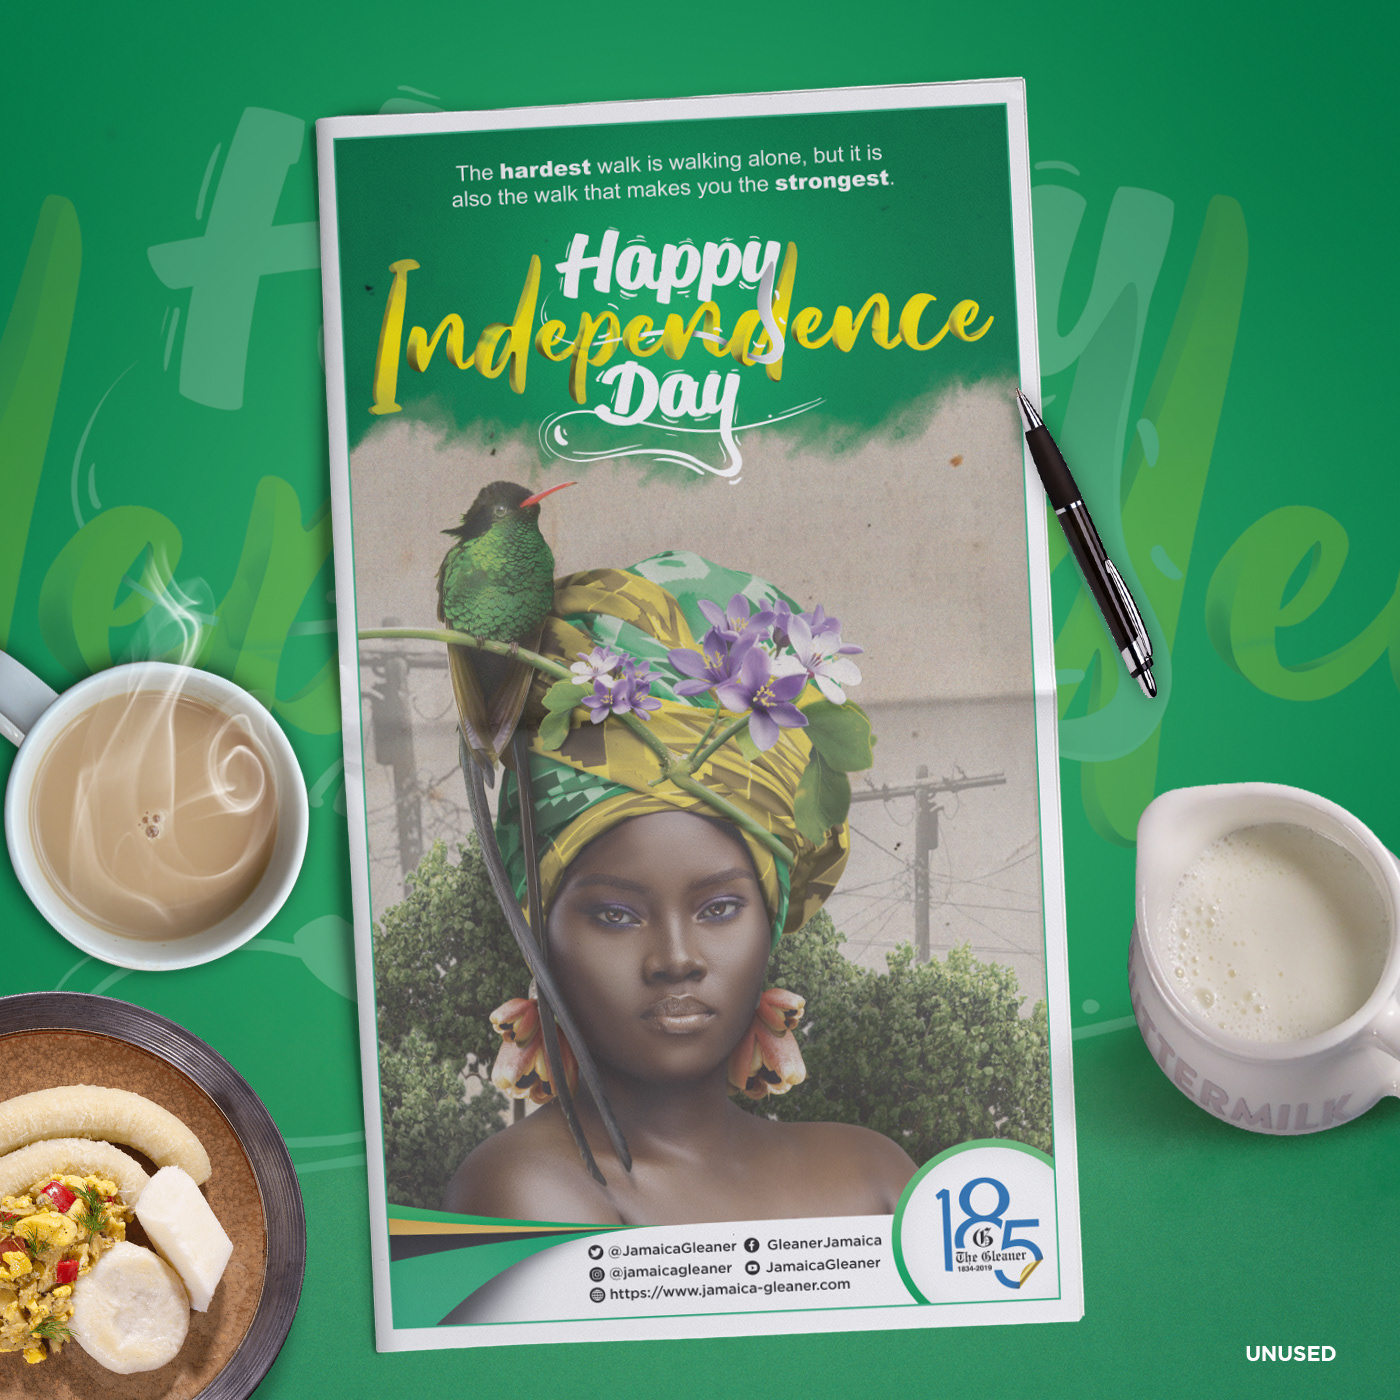 Happy Independence artwork designed by Kenneil Smith